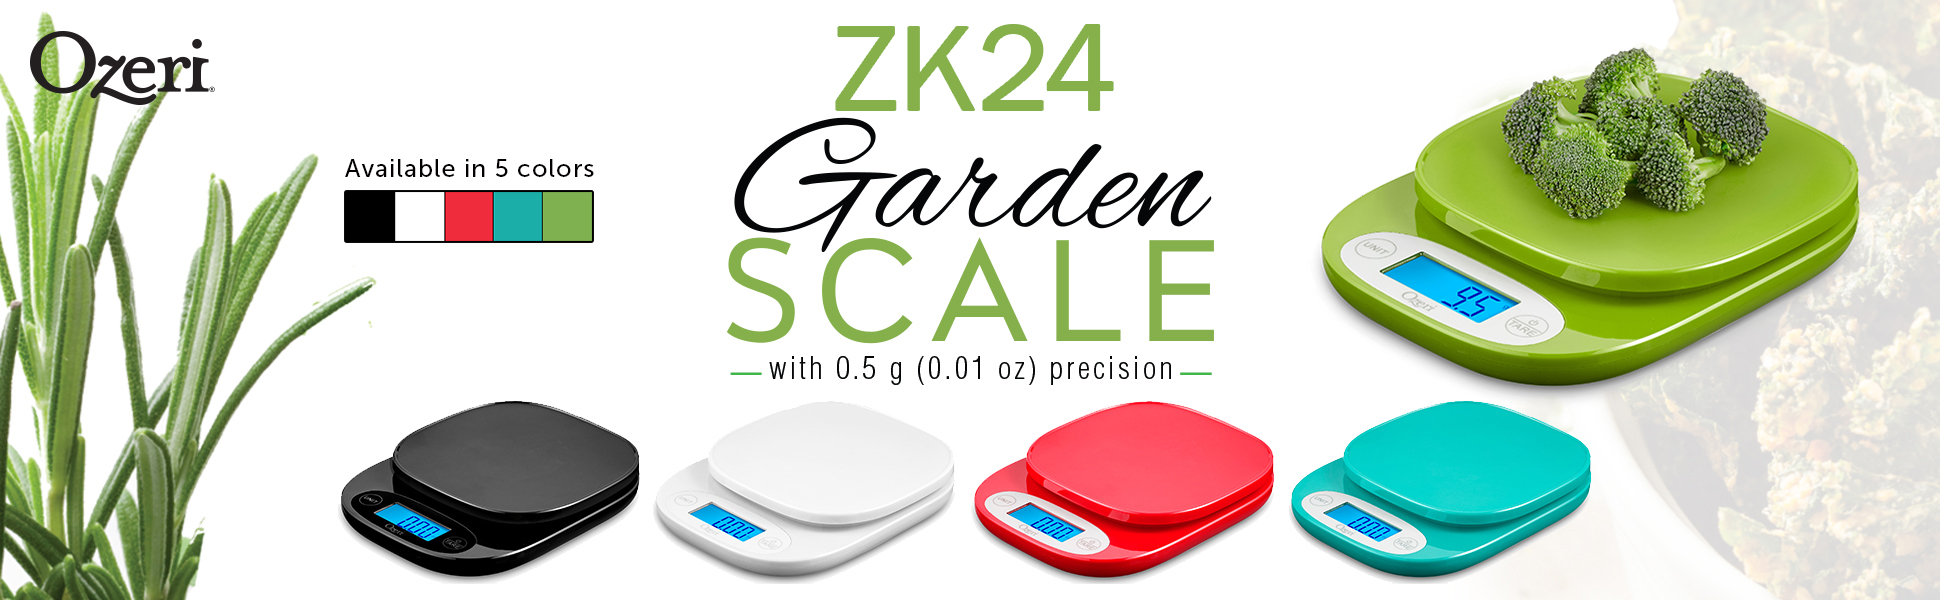 Ozeri 420 Garden and Kitchen Scale, with 0.5 g (0.01 oz) Precision Weighing Technology, in Black